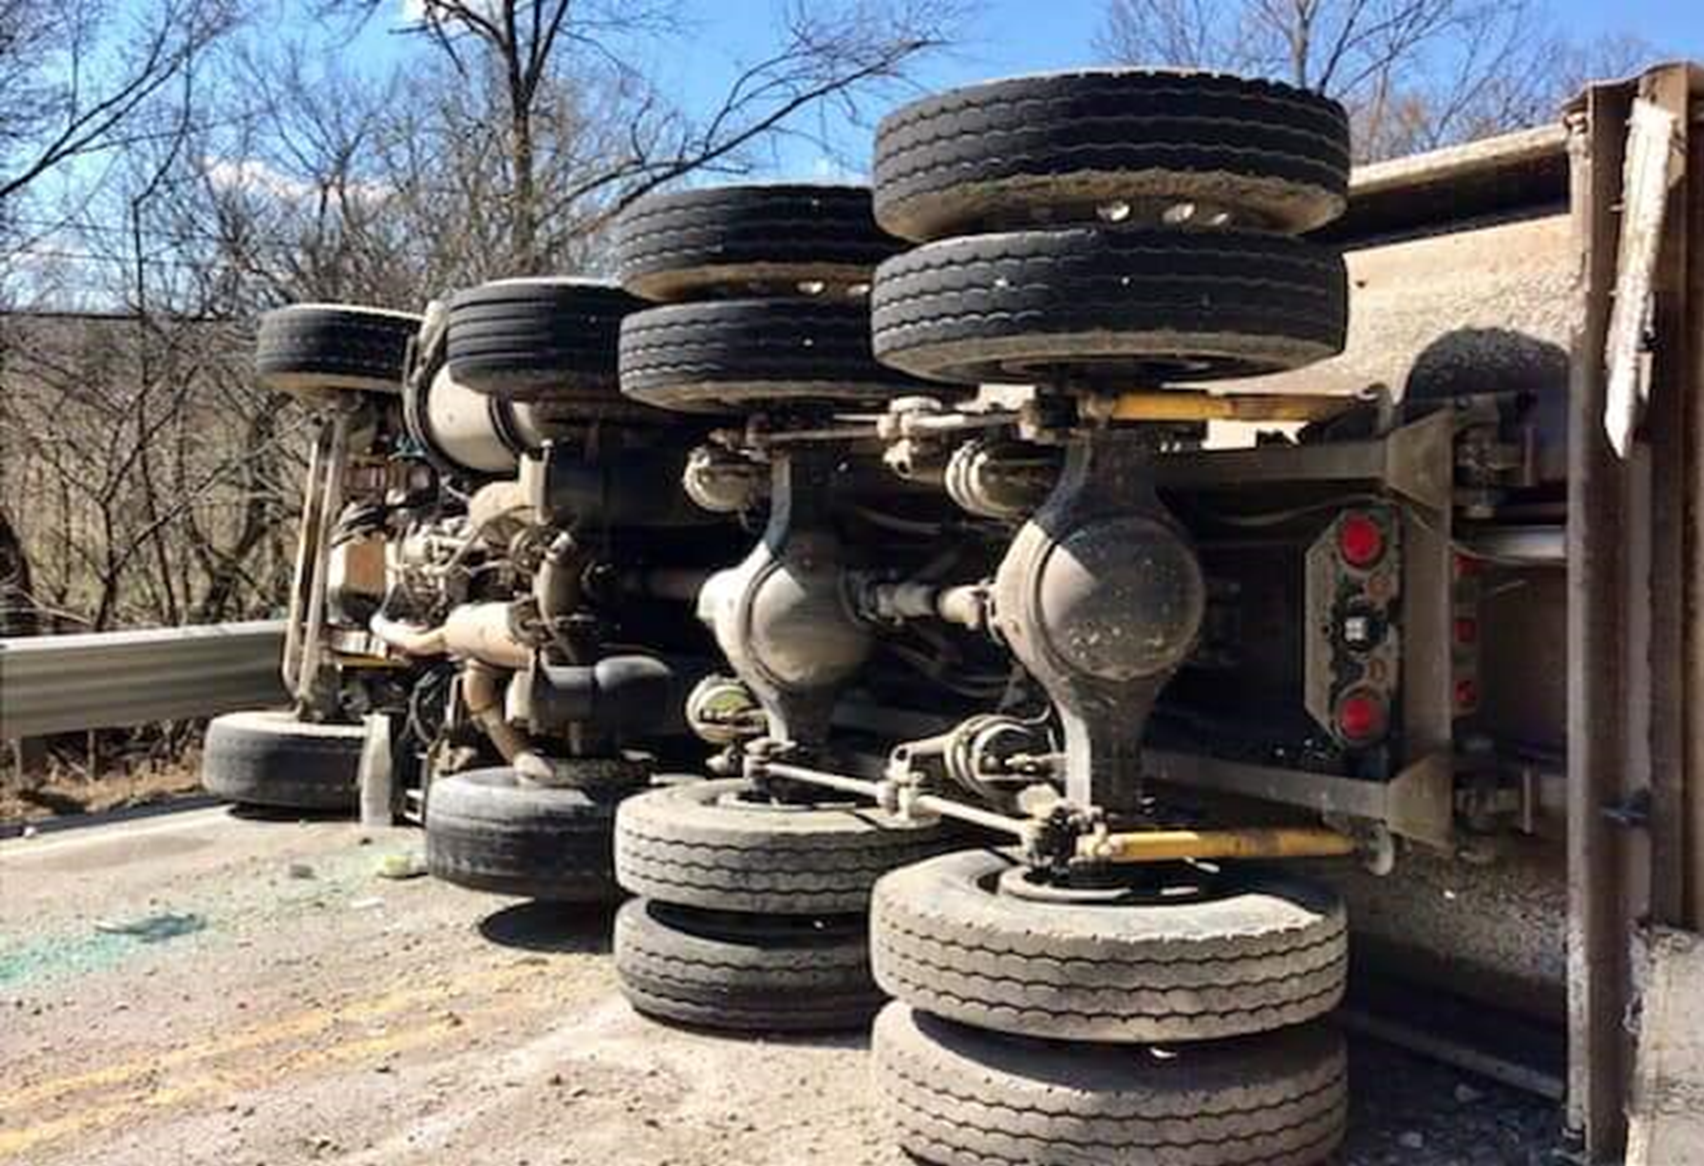 Distracted Semi Driver Overturns, Dumps 20 Tons of Gravel on US 150 Monday